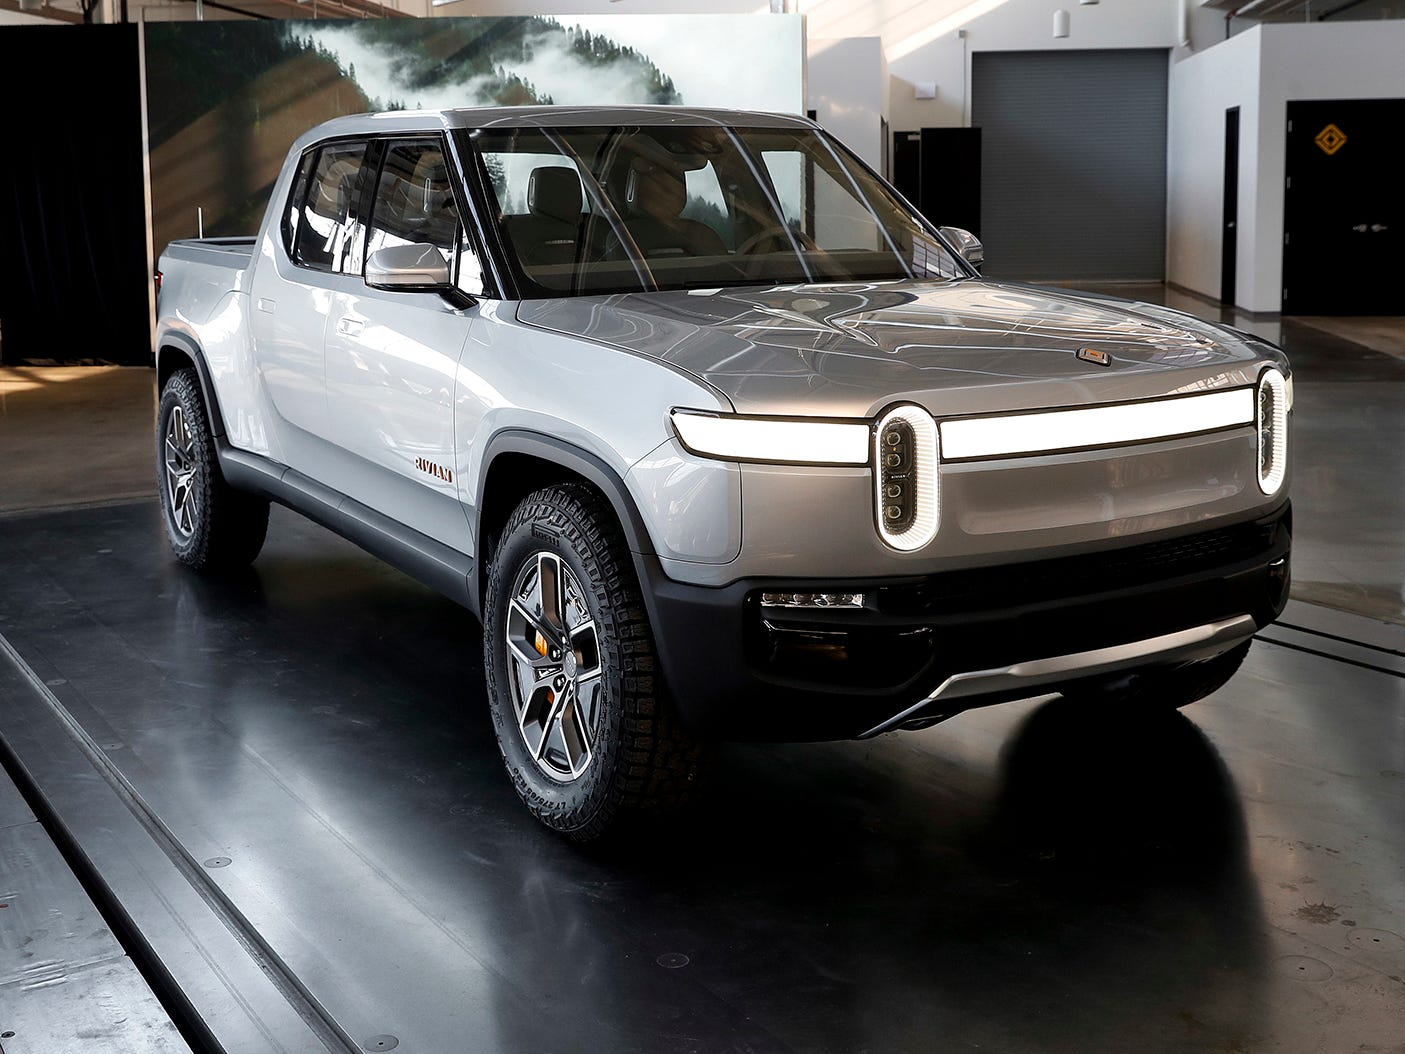 This Wednesday, Nov. 14, 2018, photo shows Rivian R1T at Rivian headquarters in Plymouth, Mich. The company, which plans to start selling vehicles in two years, is another in a growing line of startups and established automakers looking to break into the fully electric vehicle market.